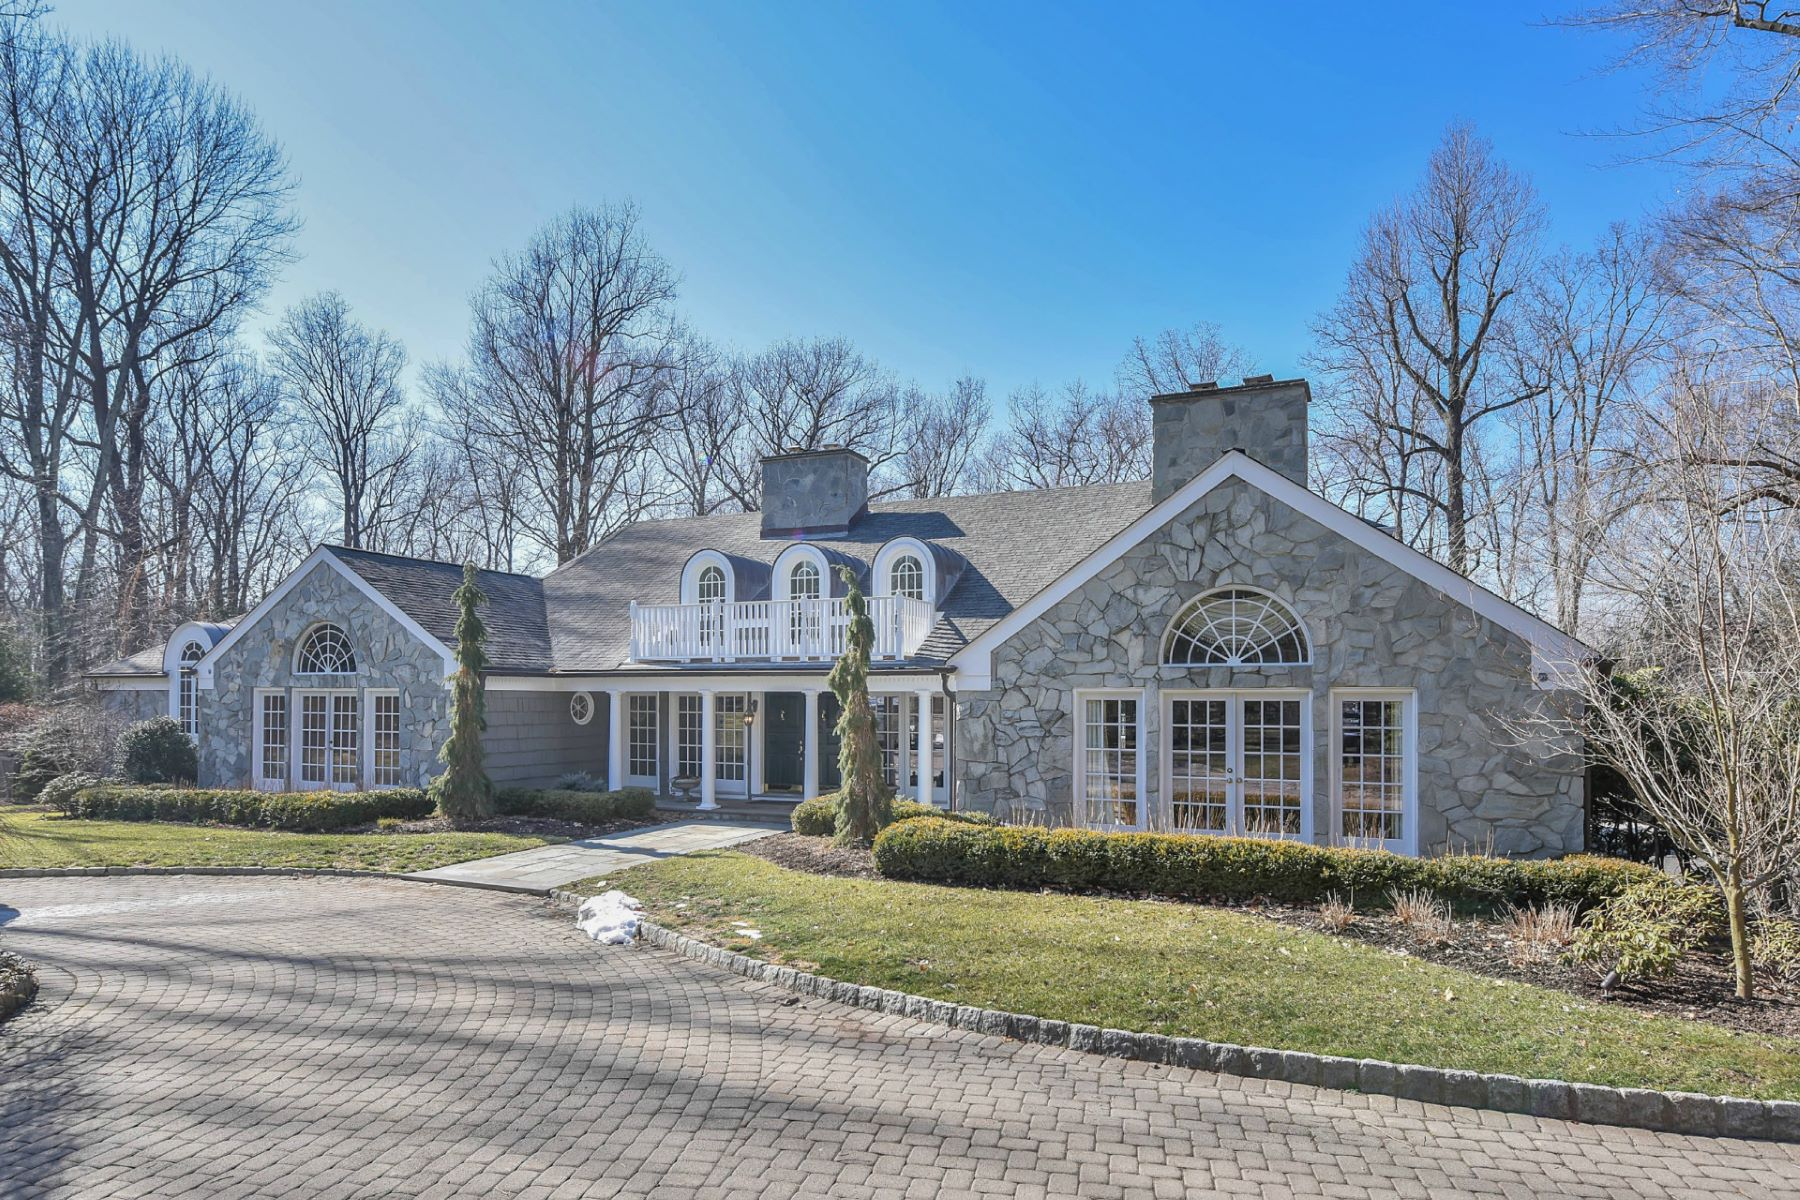 Single Family Home for Sale at Fabulous Country Home 100 Fox Hedge Rd Saddle River, New Jersey, 07458 United States